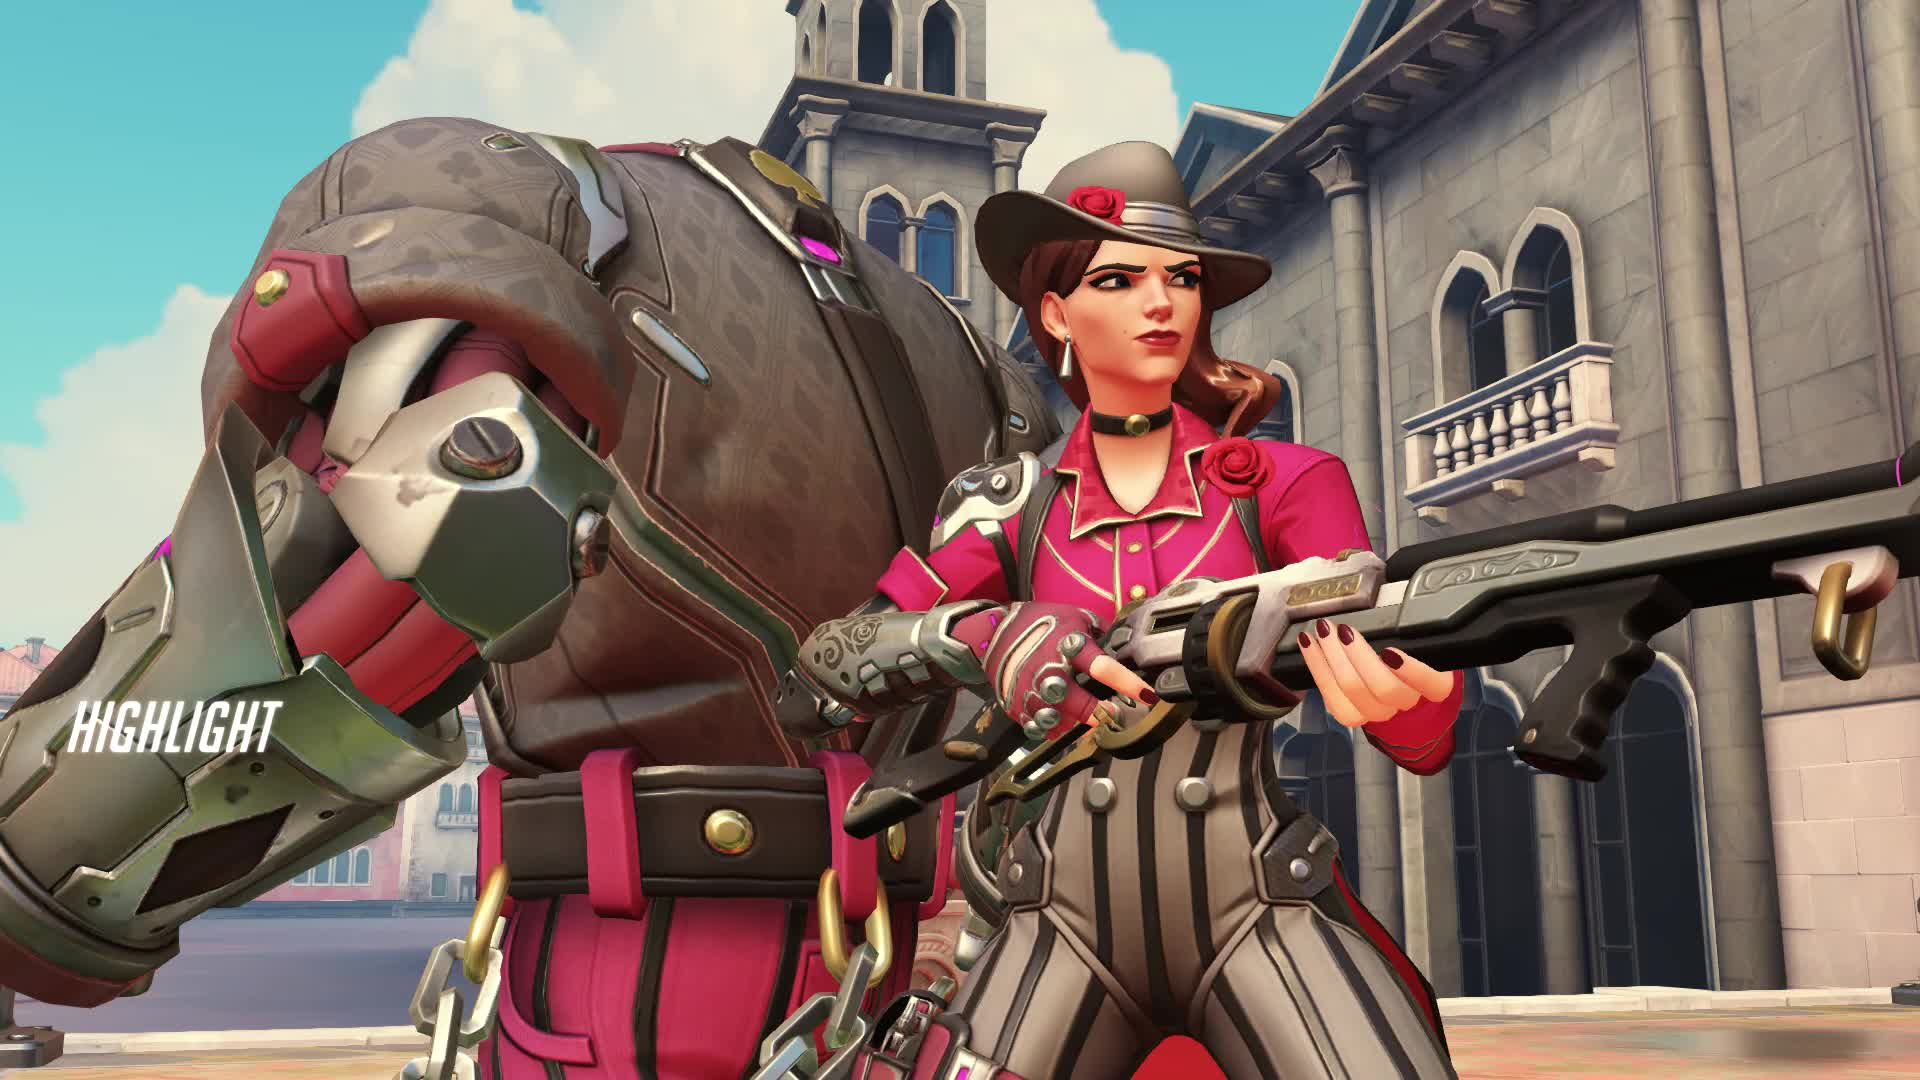 highlight, overwatch, ashe (1) 18-11-14 21-46-09 GIFs